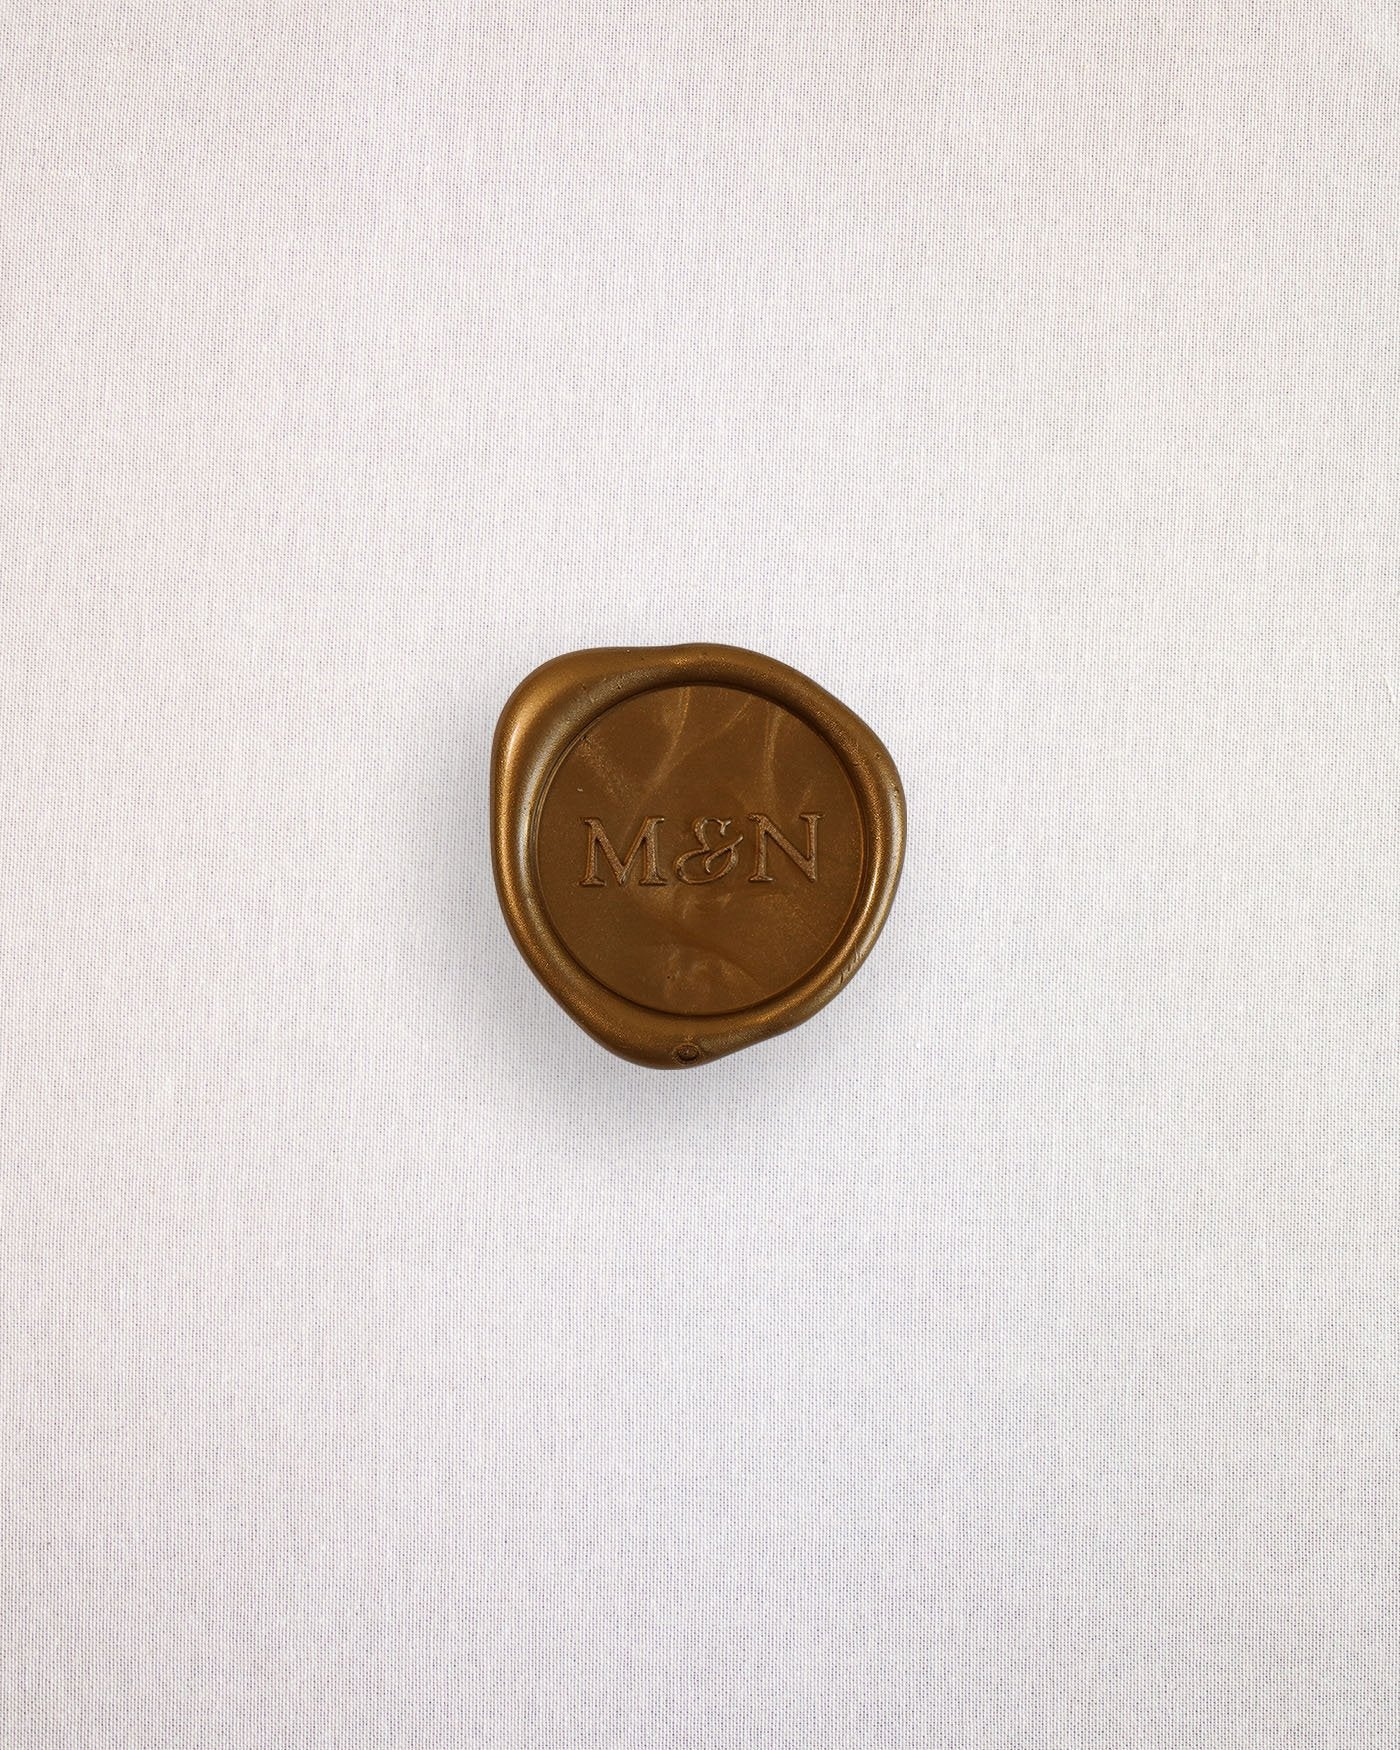 Habitat Wax Seal